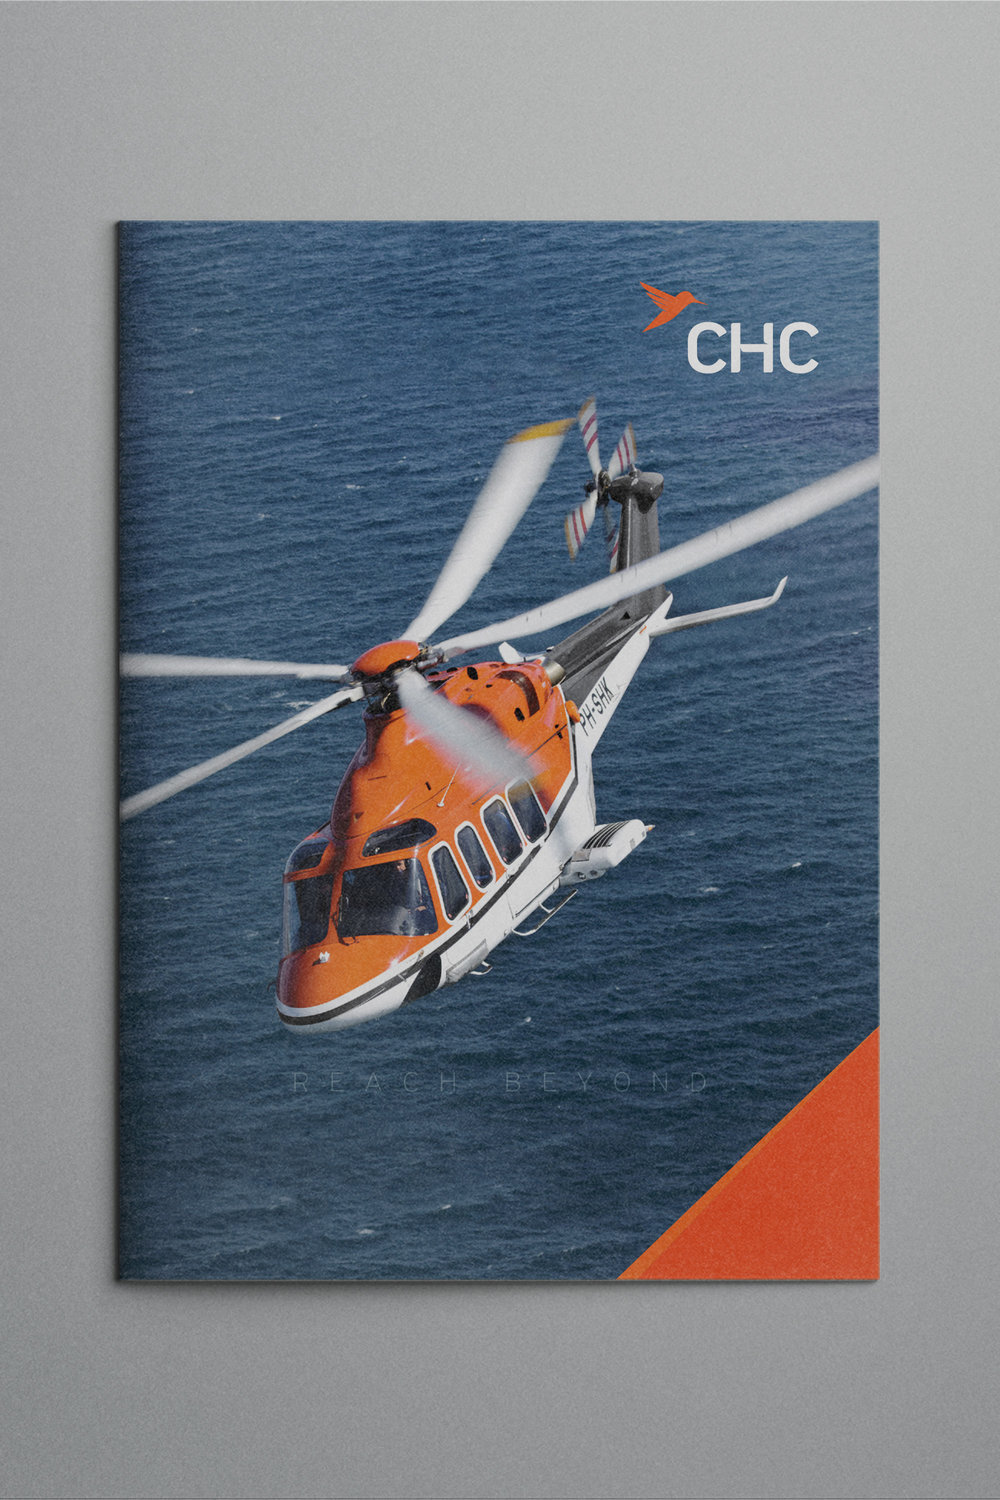 ronaldvillegas-chc-helicopter-brochure-cover.jpg